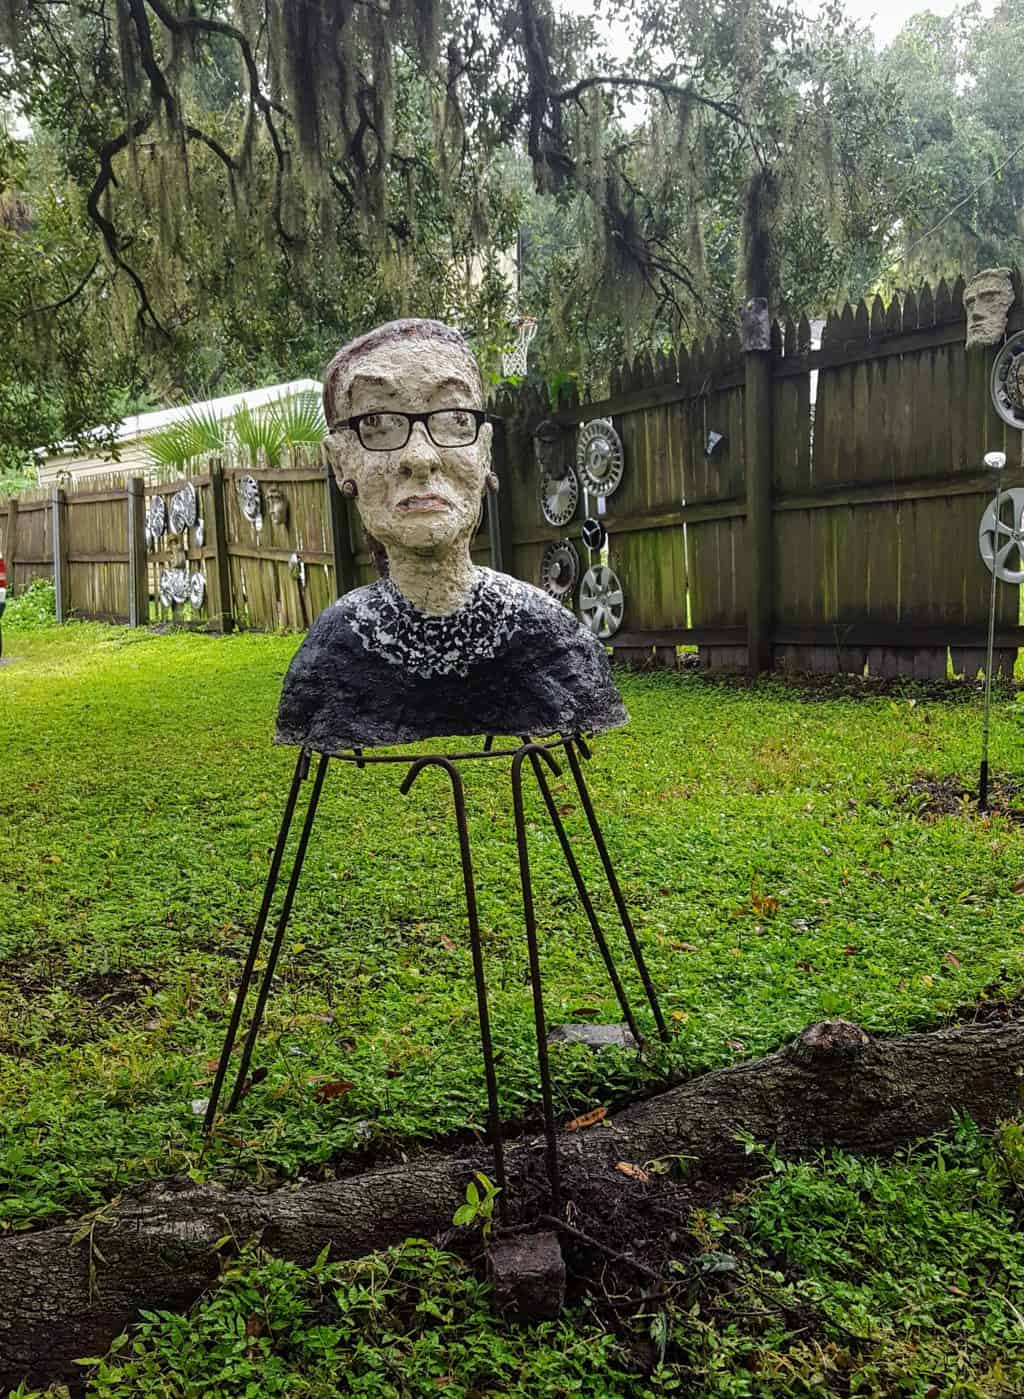 Ruth Bader Ginsburg sculpture in Papercrete